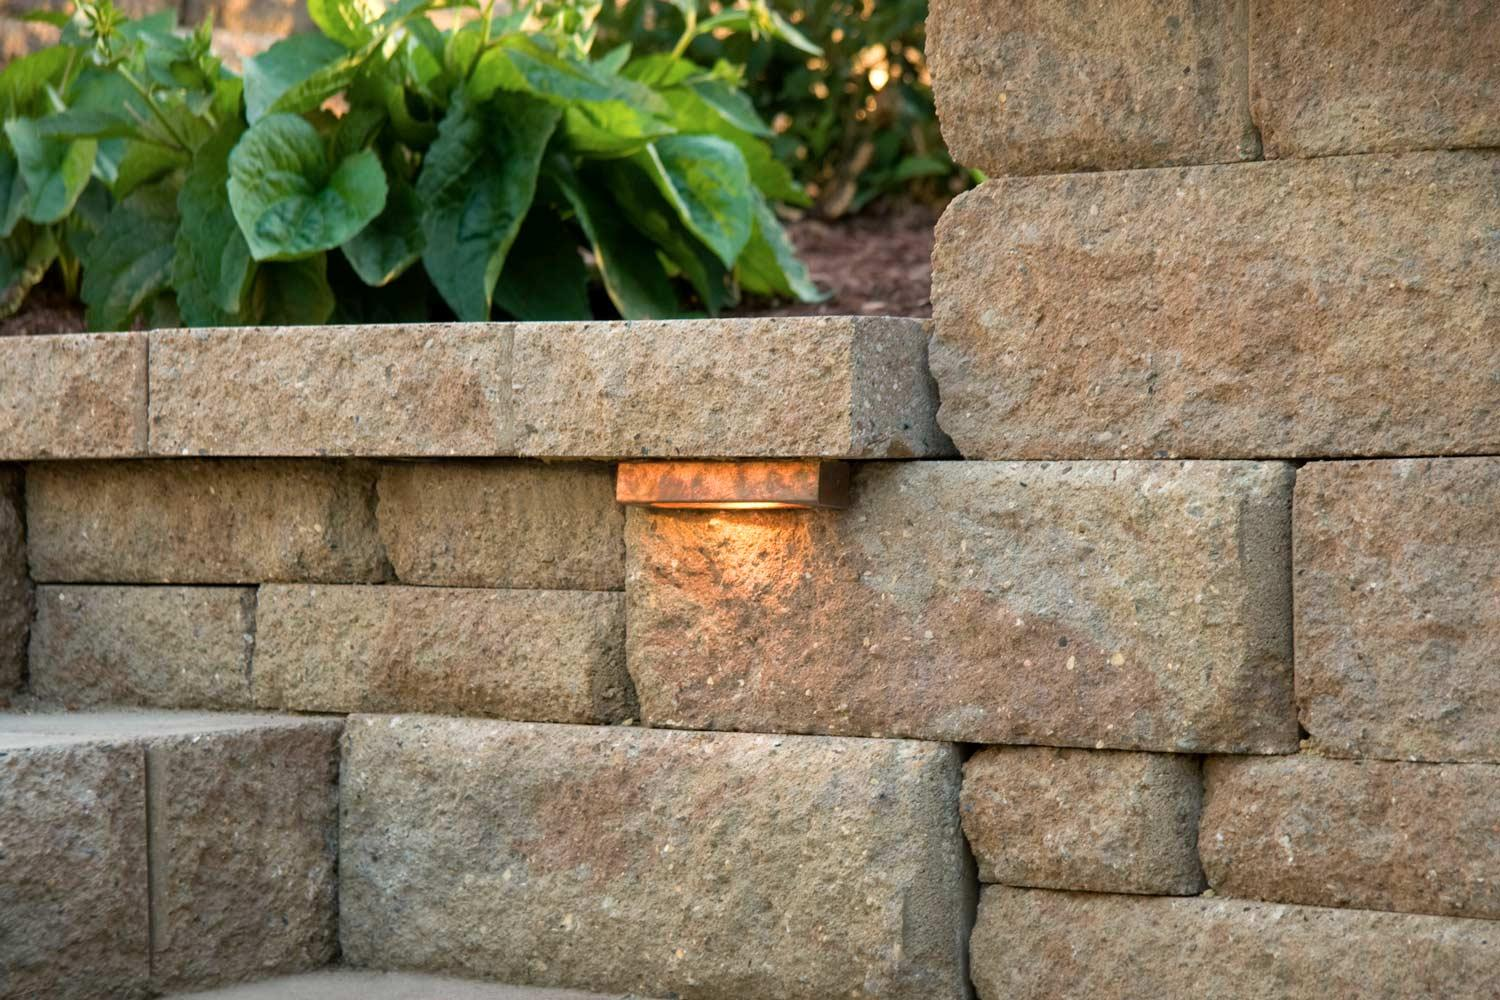 Textured modular stone block retaining wall with built-in copper wall sconces..